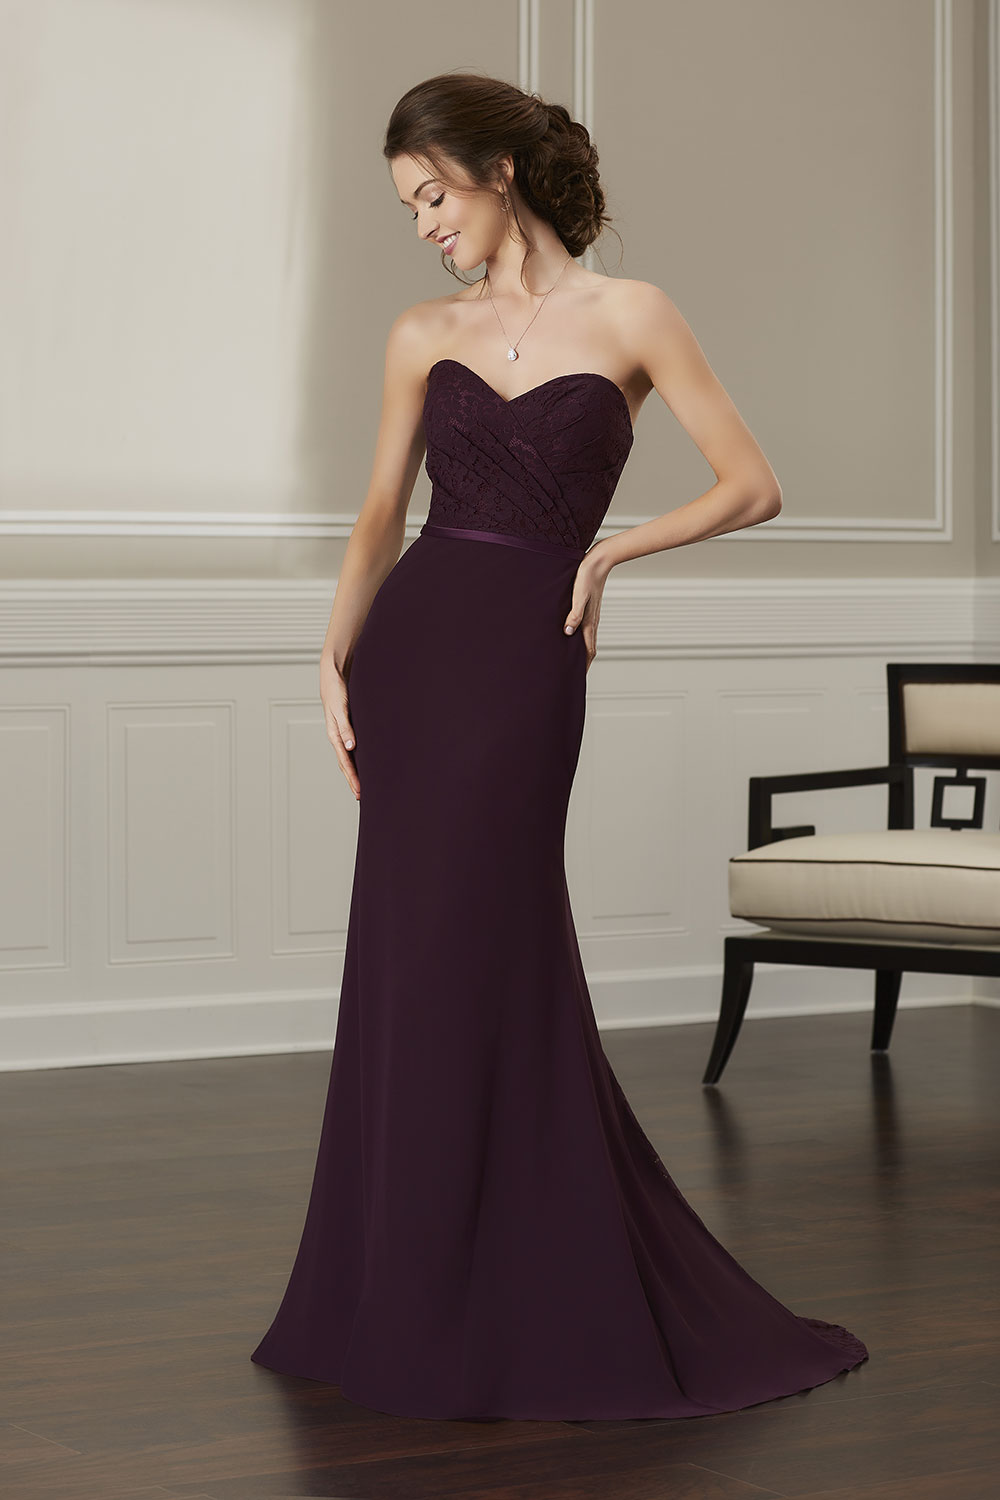 bridesmaid-dresses-jacquelin-bridals-canada-26845